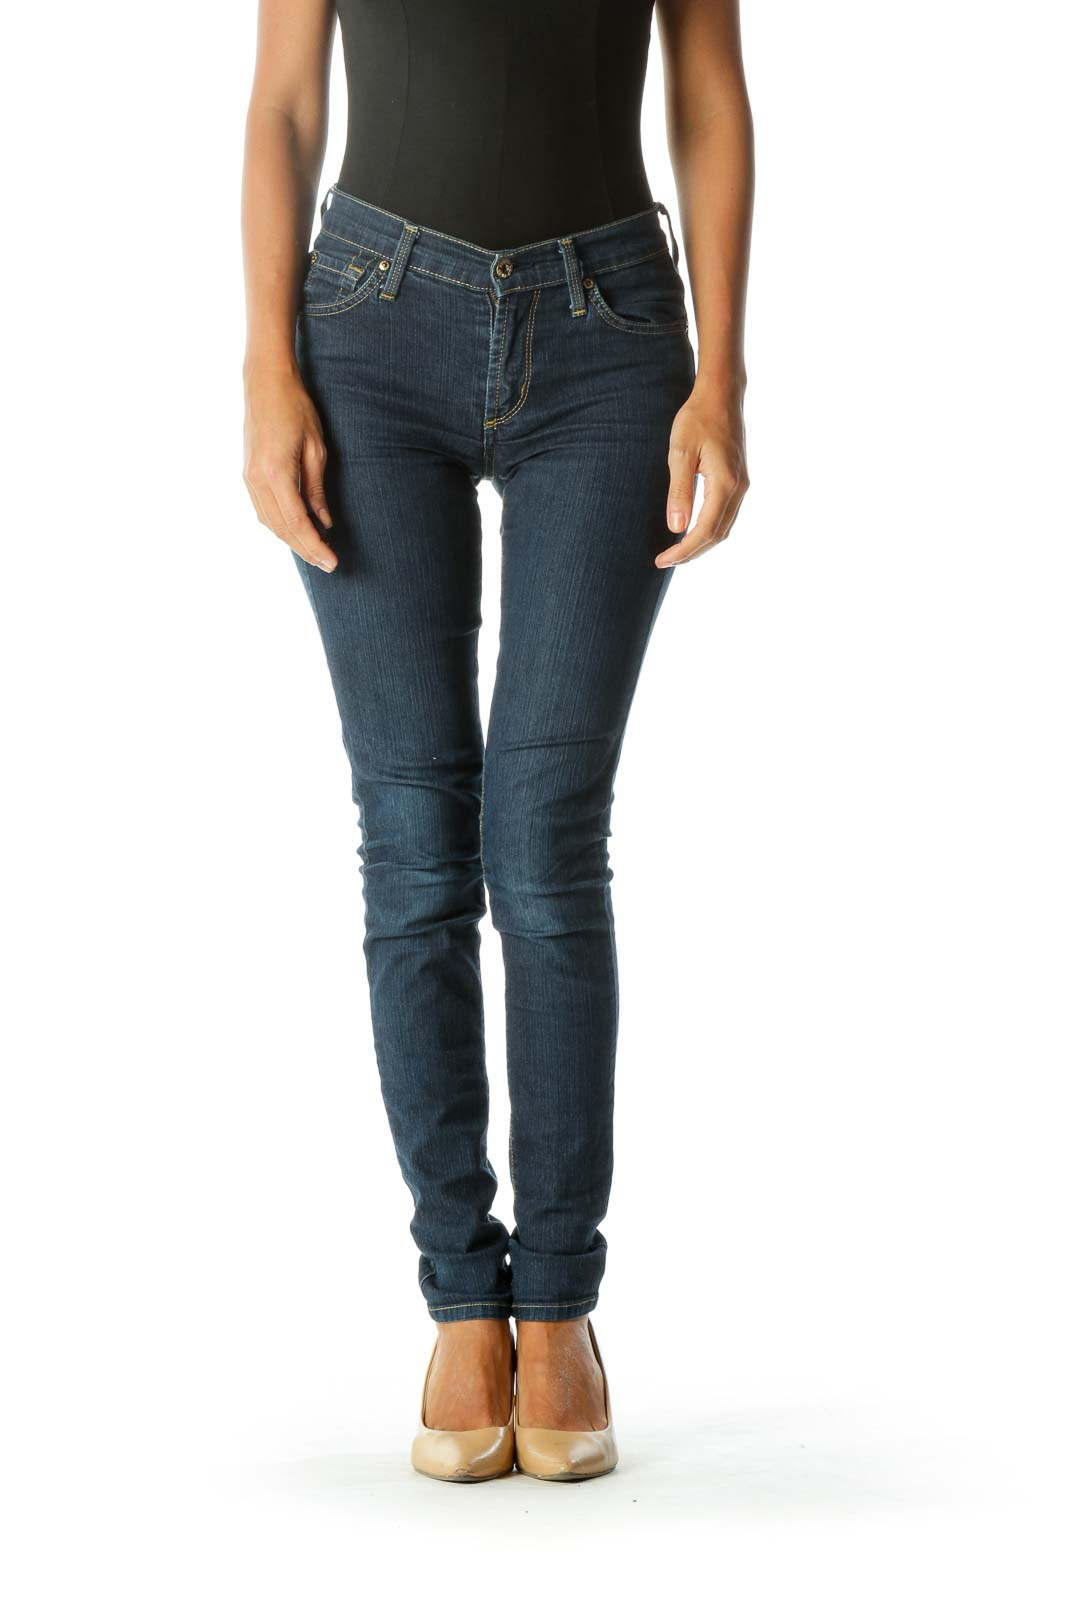 Blue Skinny Medium-Wash Jeans